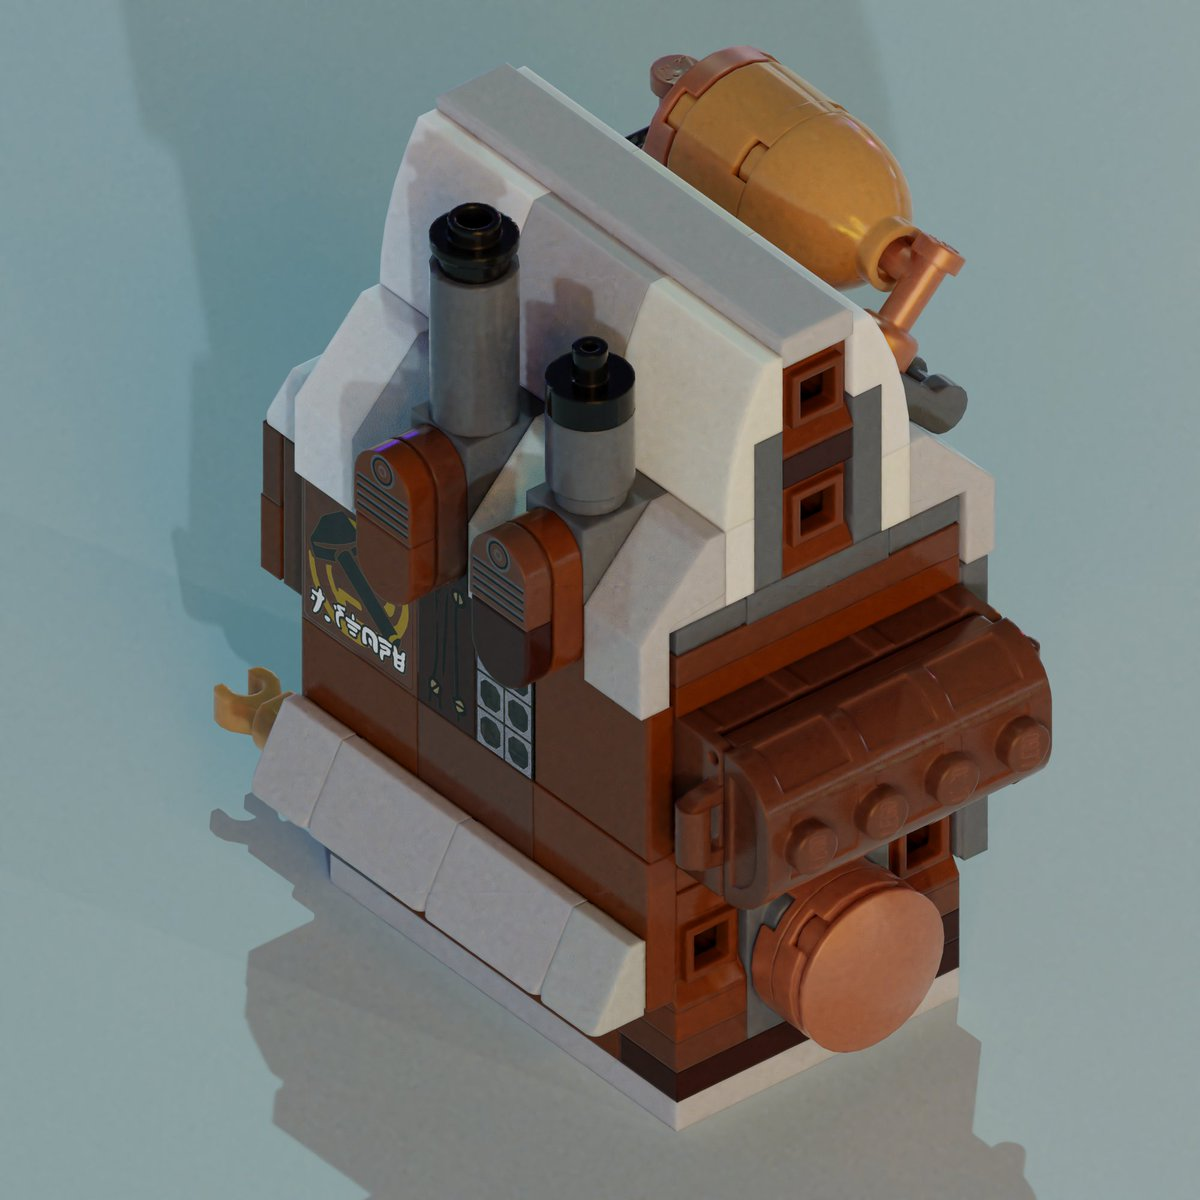 Sooo, I had huge @frostpunkgame project to make whole city in #LEGO but it turned out to be quite taxing effort. To not fully lost interest, I decided to show parts of city instead of showing all when done. Let's start with houses, 1st variant. #steampunk #FrostPunk #AFOL #scifi